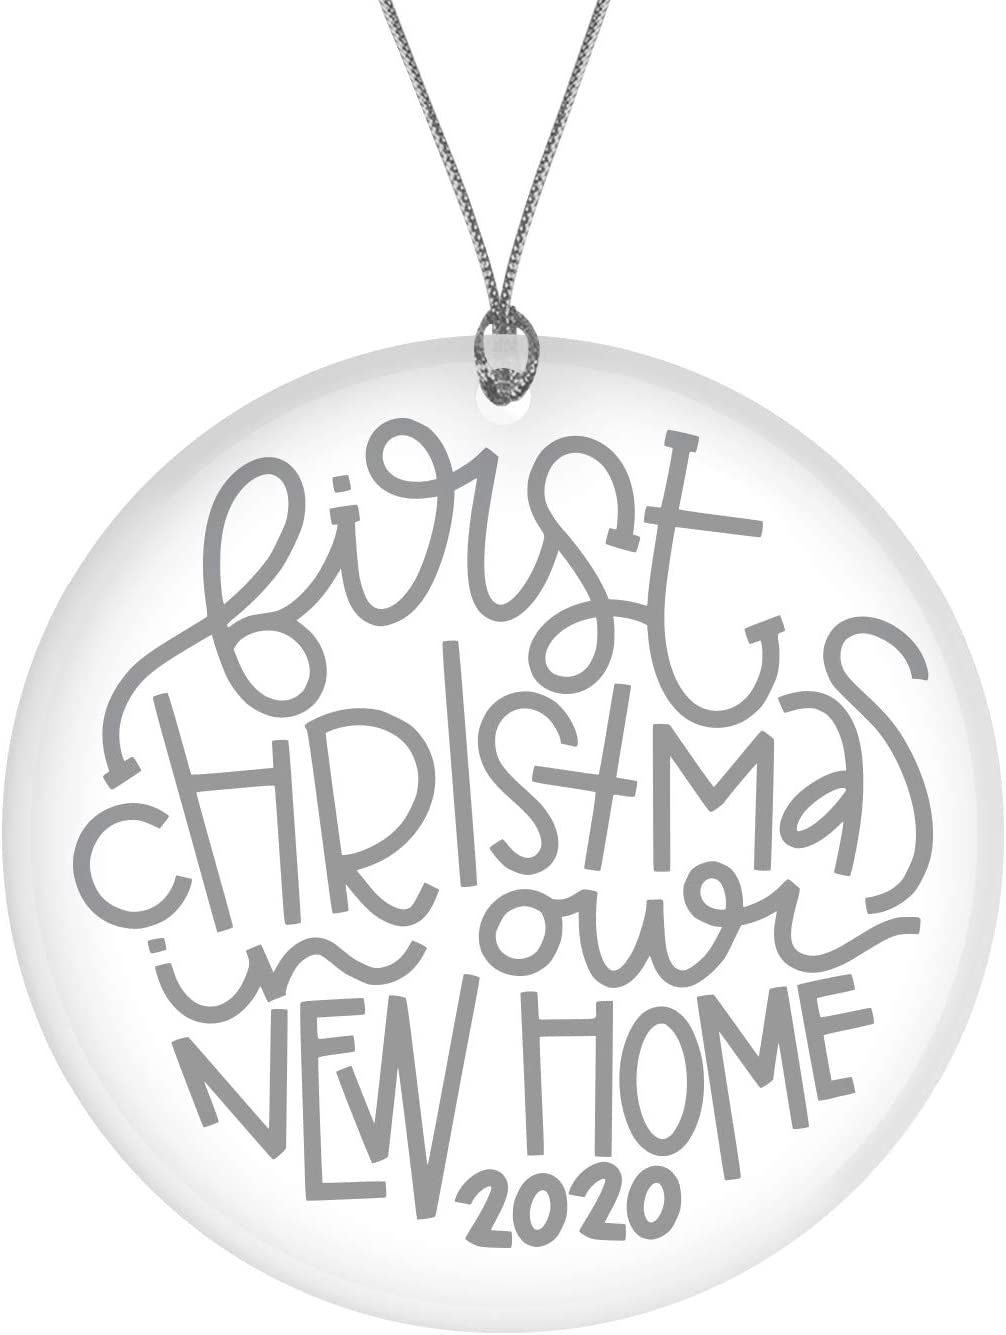 """Bad Bananas - Our First Christmas In Our New Home - 3"""" Glass Christmas Ornament - New Home Ornament 2020 - Homeowners and Housewarming Gifts"""